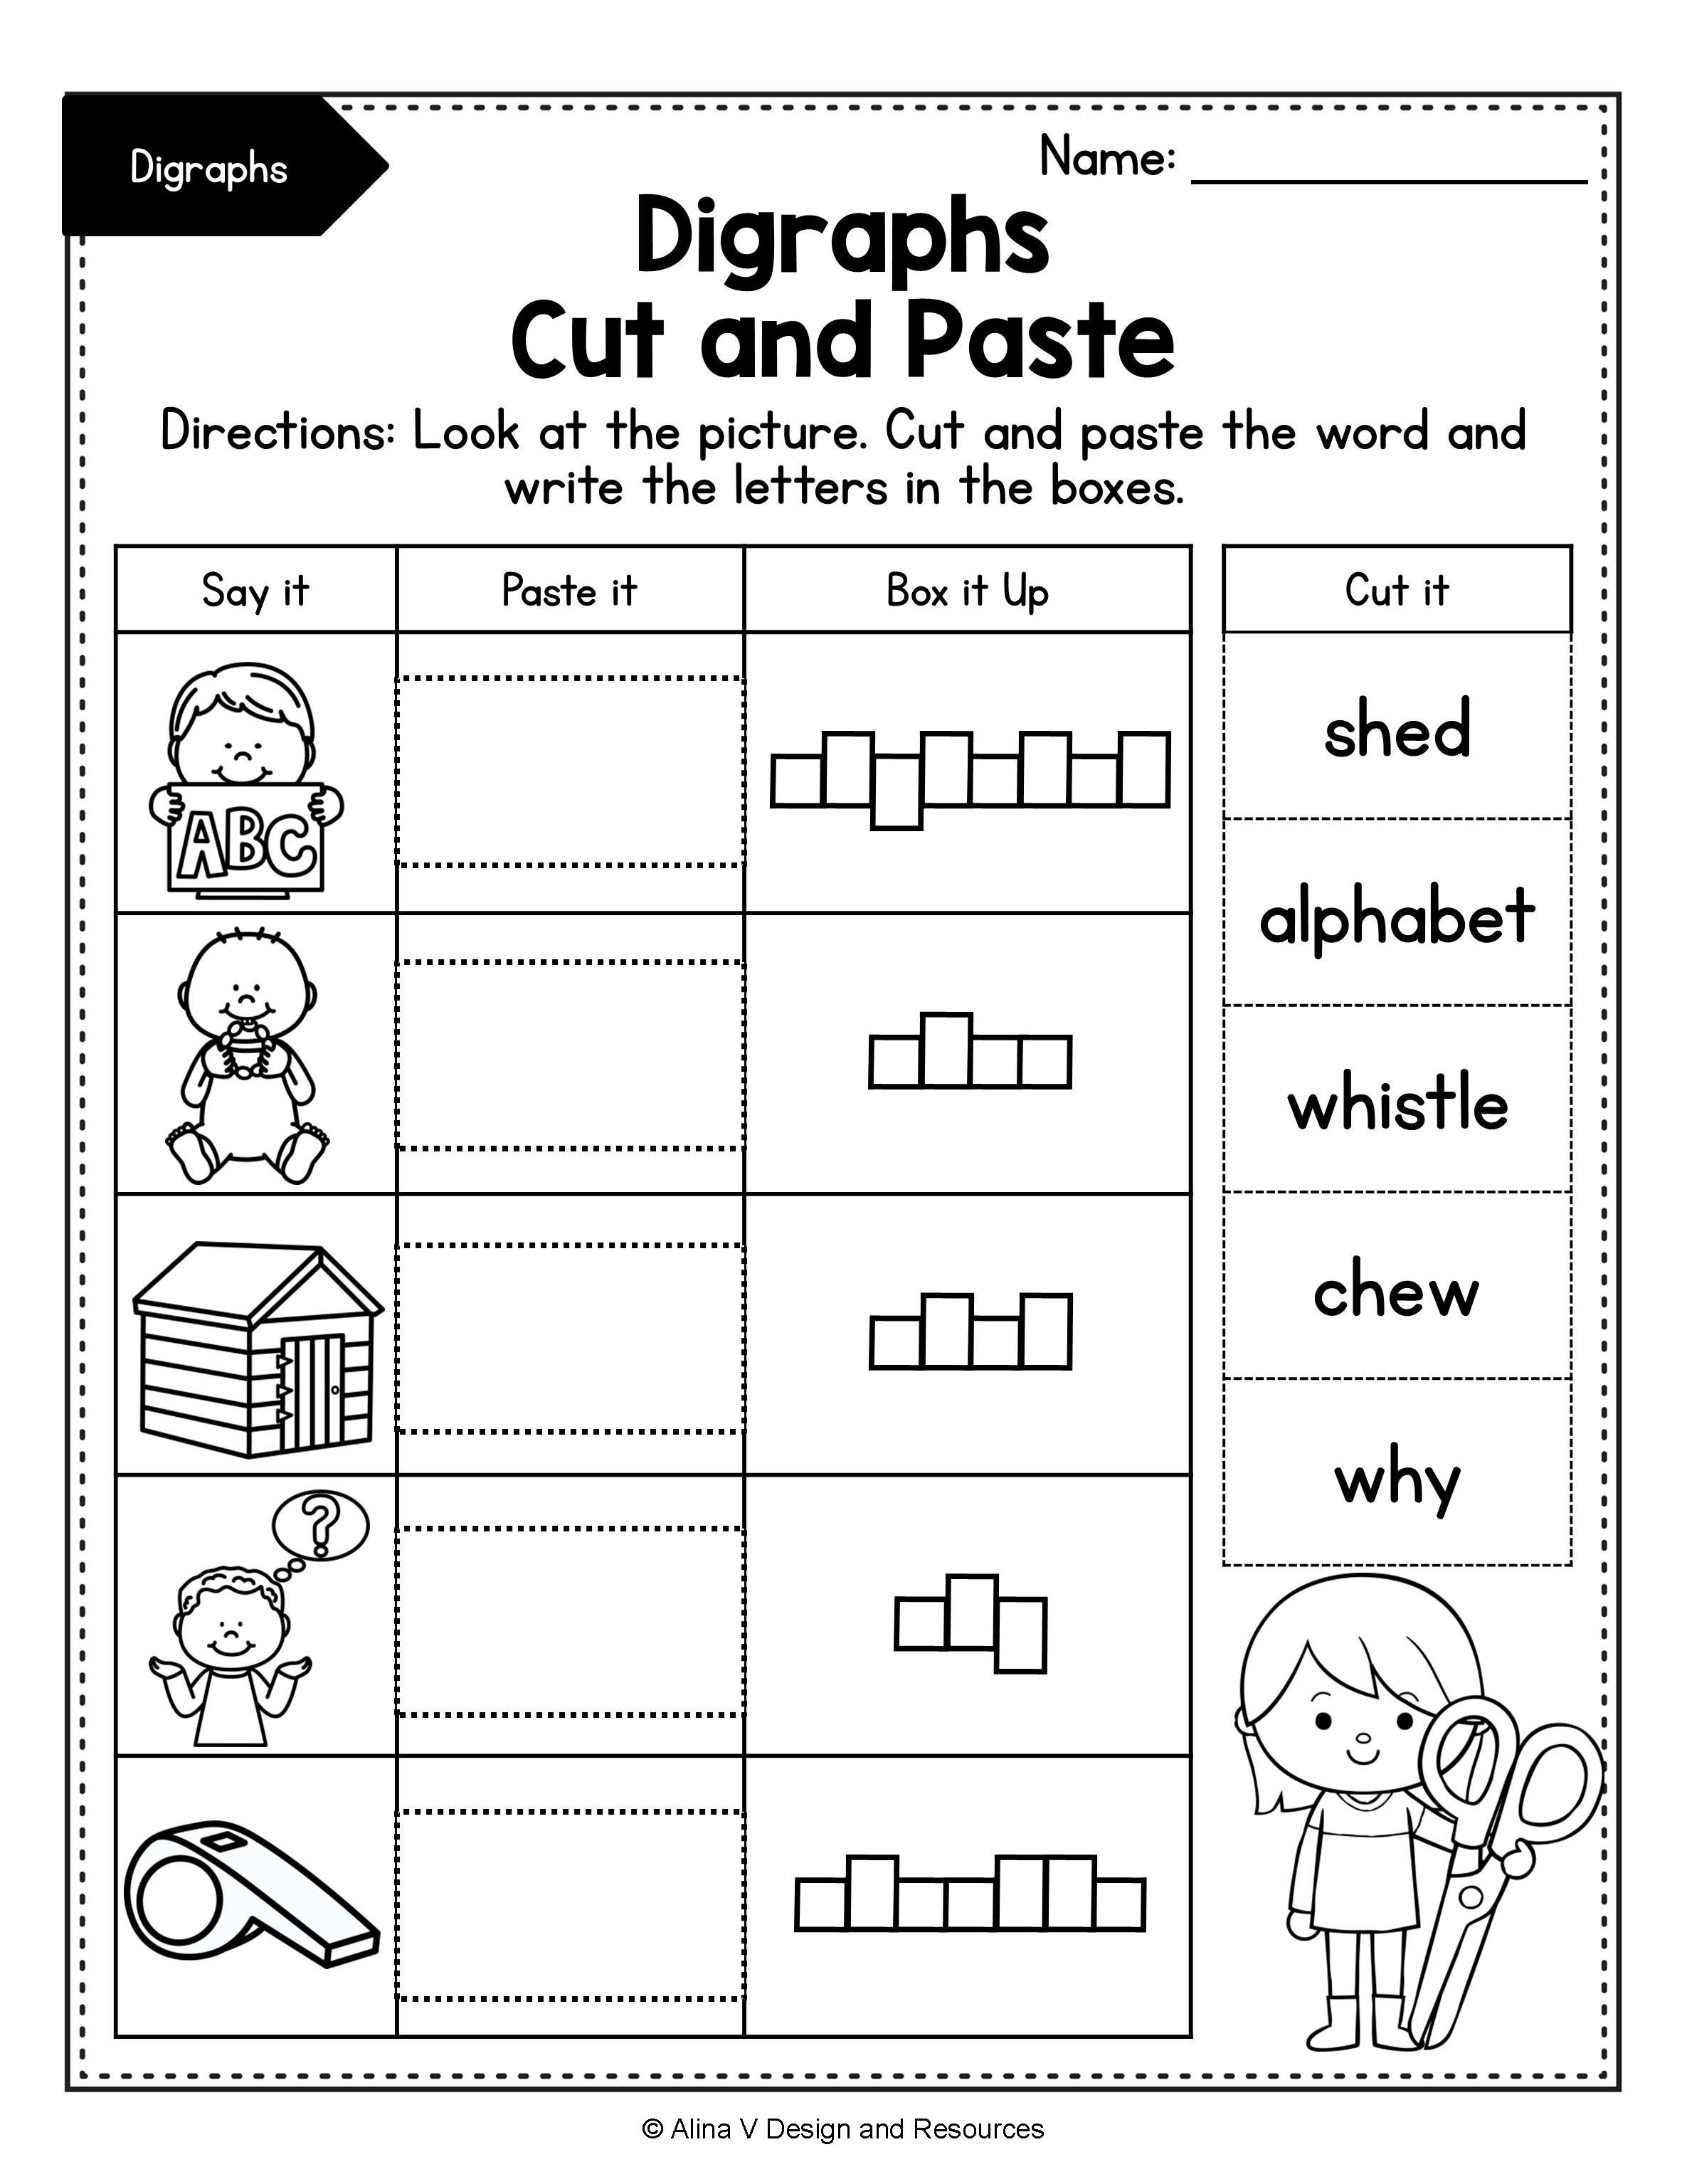 Consonant Digraphs Worksheets Sh Ch Th Wh Ph Kn Wr Qu In 2020 Digraph Phonics Activities Teaching Vowels